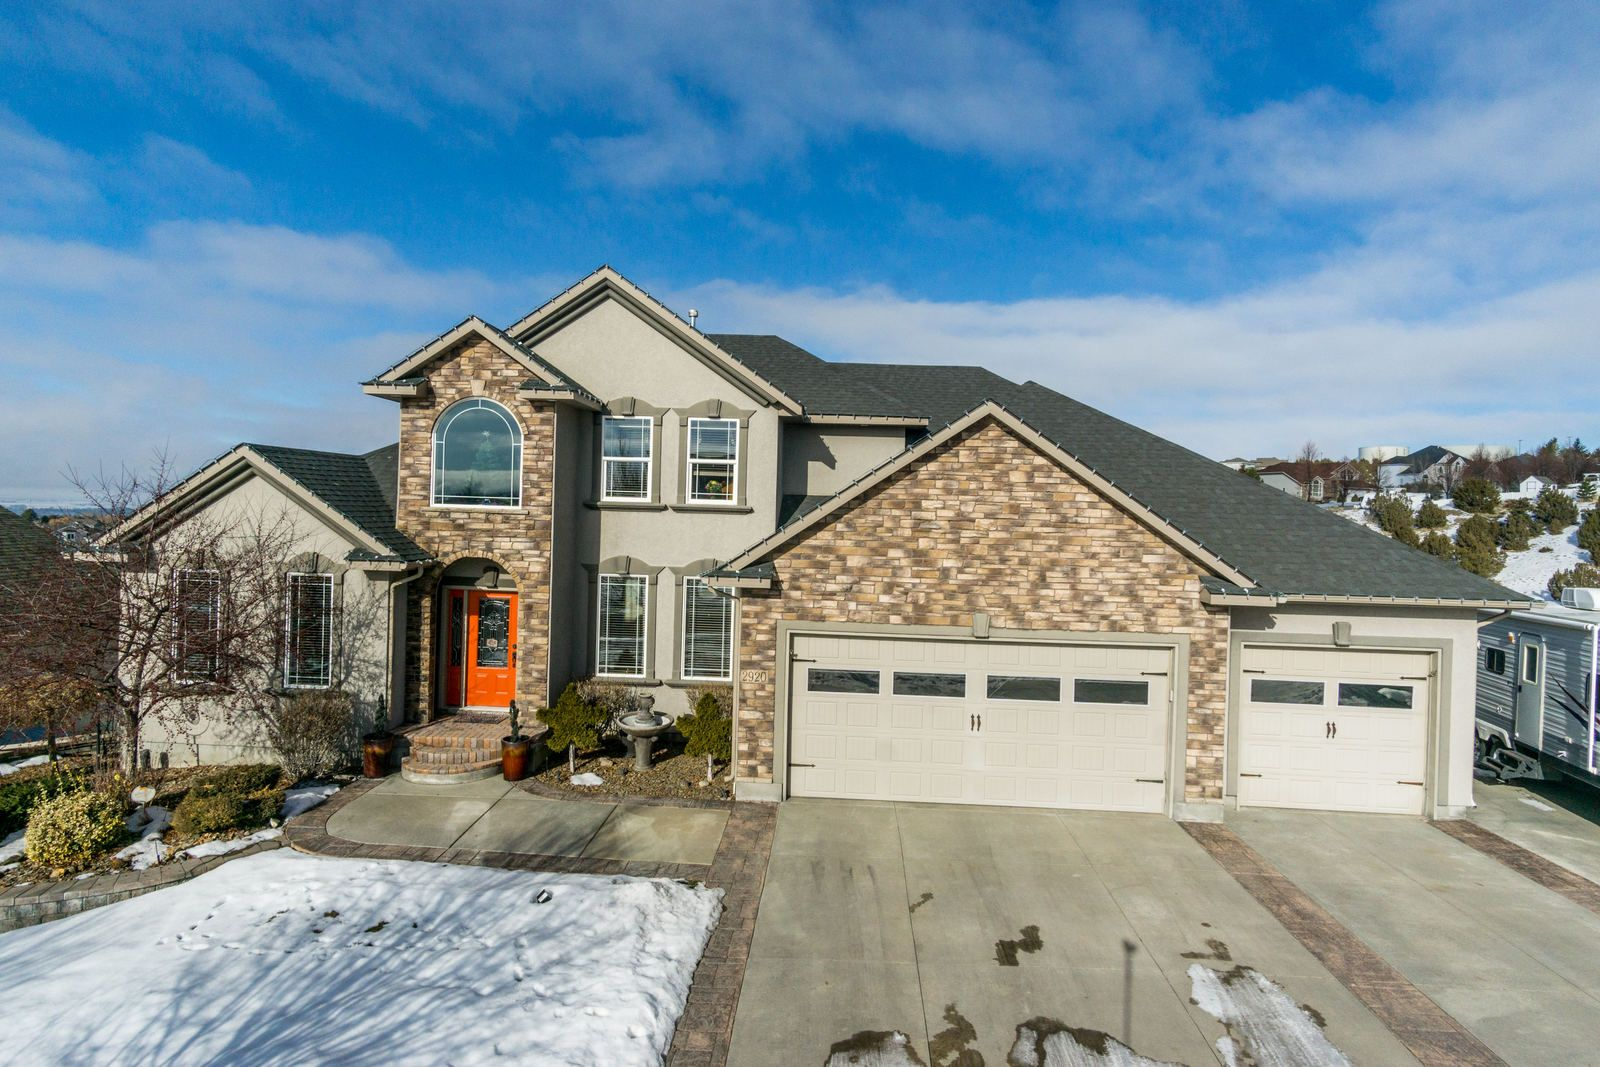 Views Views Views From This Beautiful Custom Built Highland Home With 5 Bedrooms 3 1 2 Baths 3 Car Garage Highland Homes Custom Built Cabinets House Styles